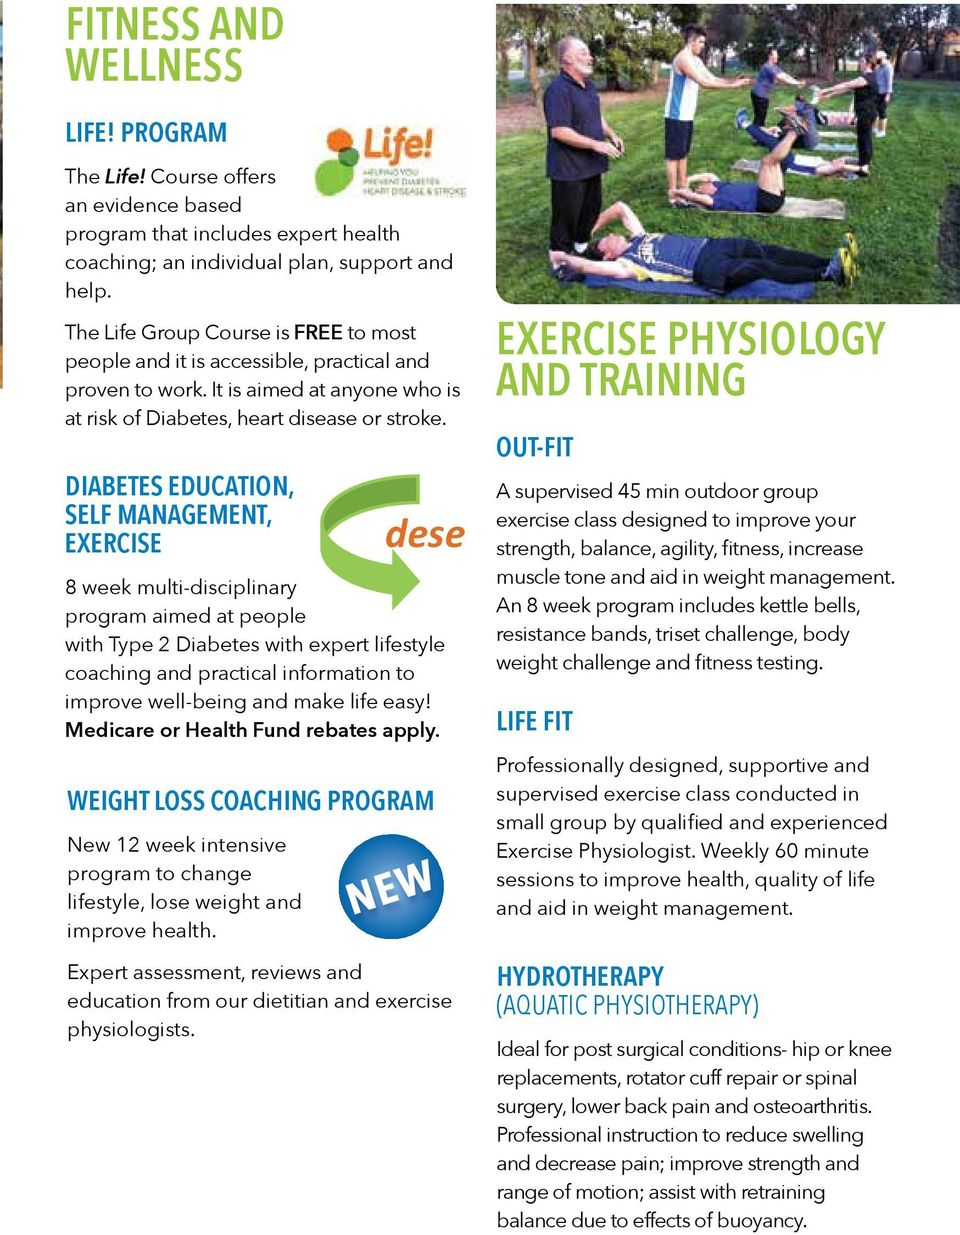 DIABETES EDUCATION, SELF MANAGEMENT, EXERCISE dese 8 week multi-disciplinary program aimed at people with Type 2 Diabetes with expert lifestyle coaching and practical information to improve